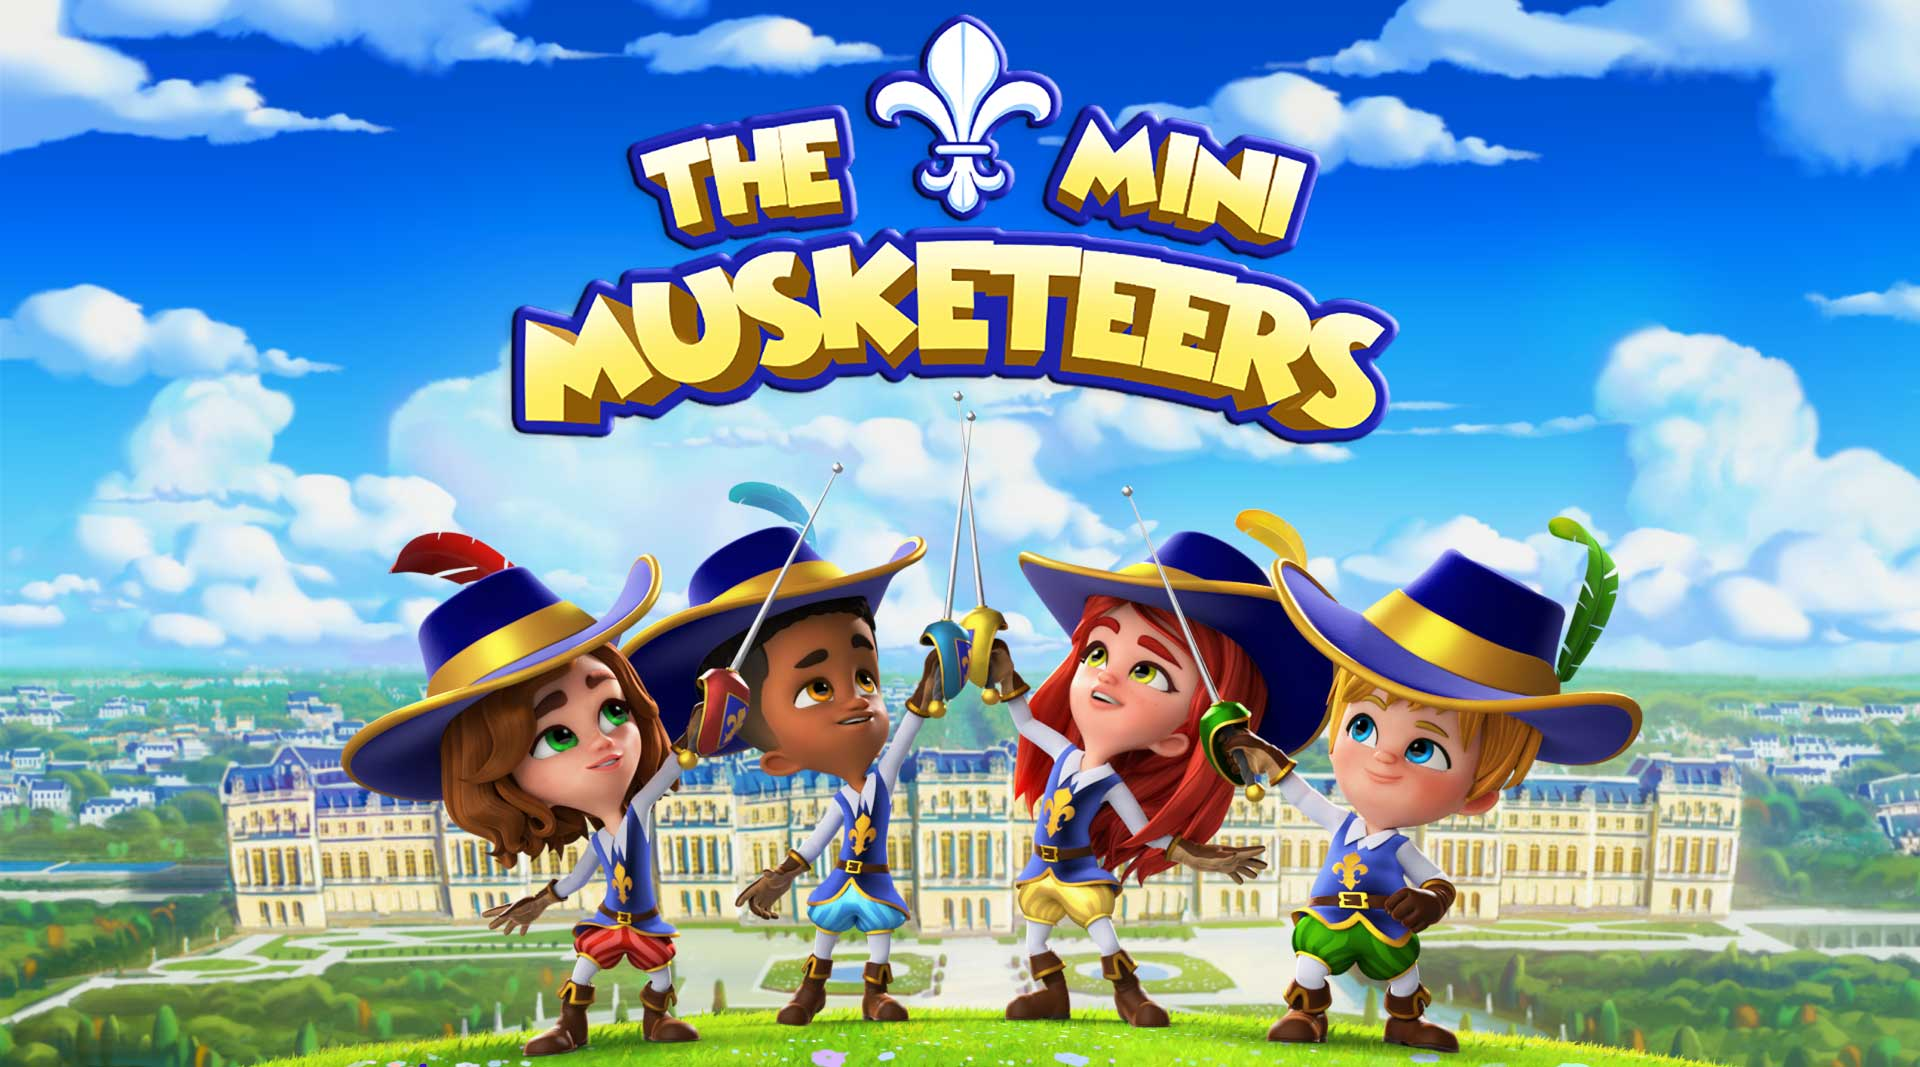 The Mini Musketeers: Series Trailer